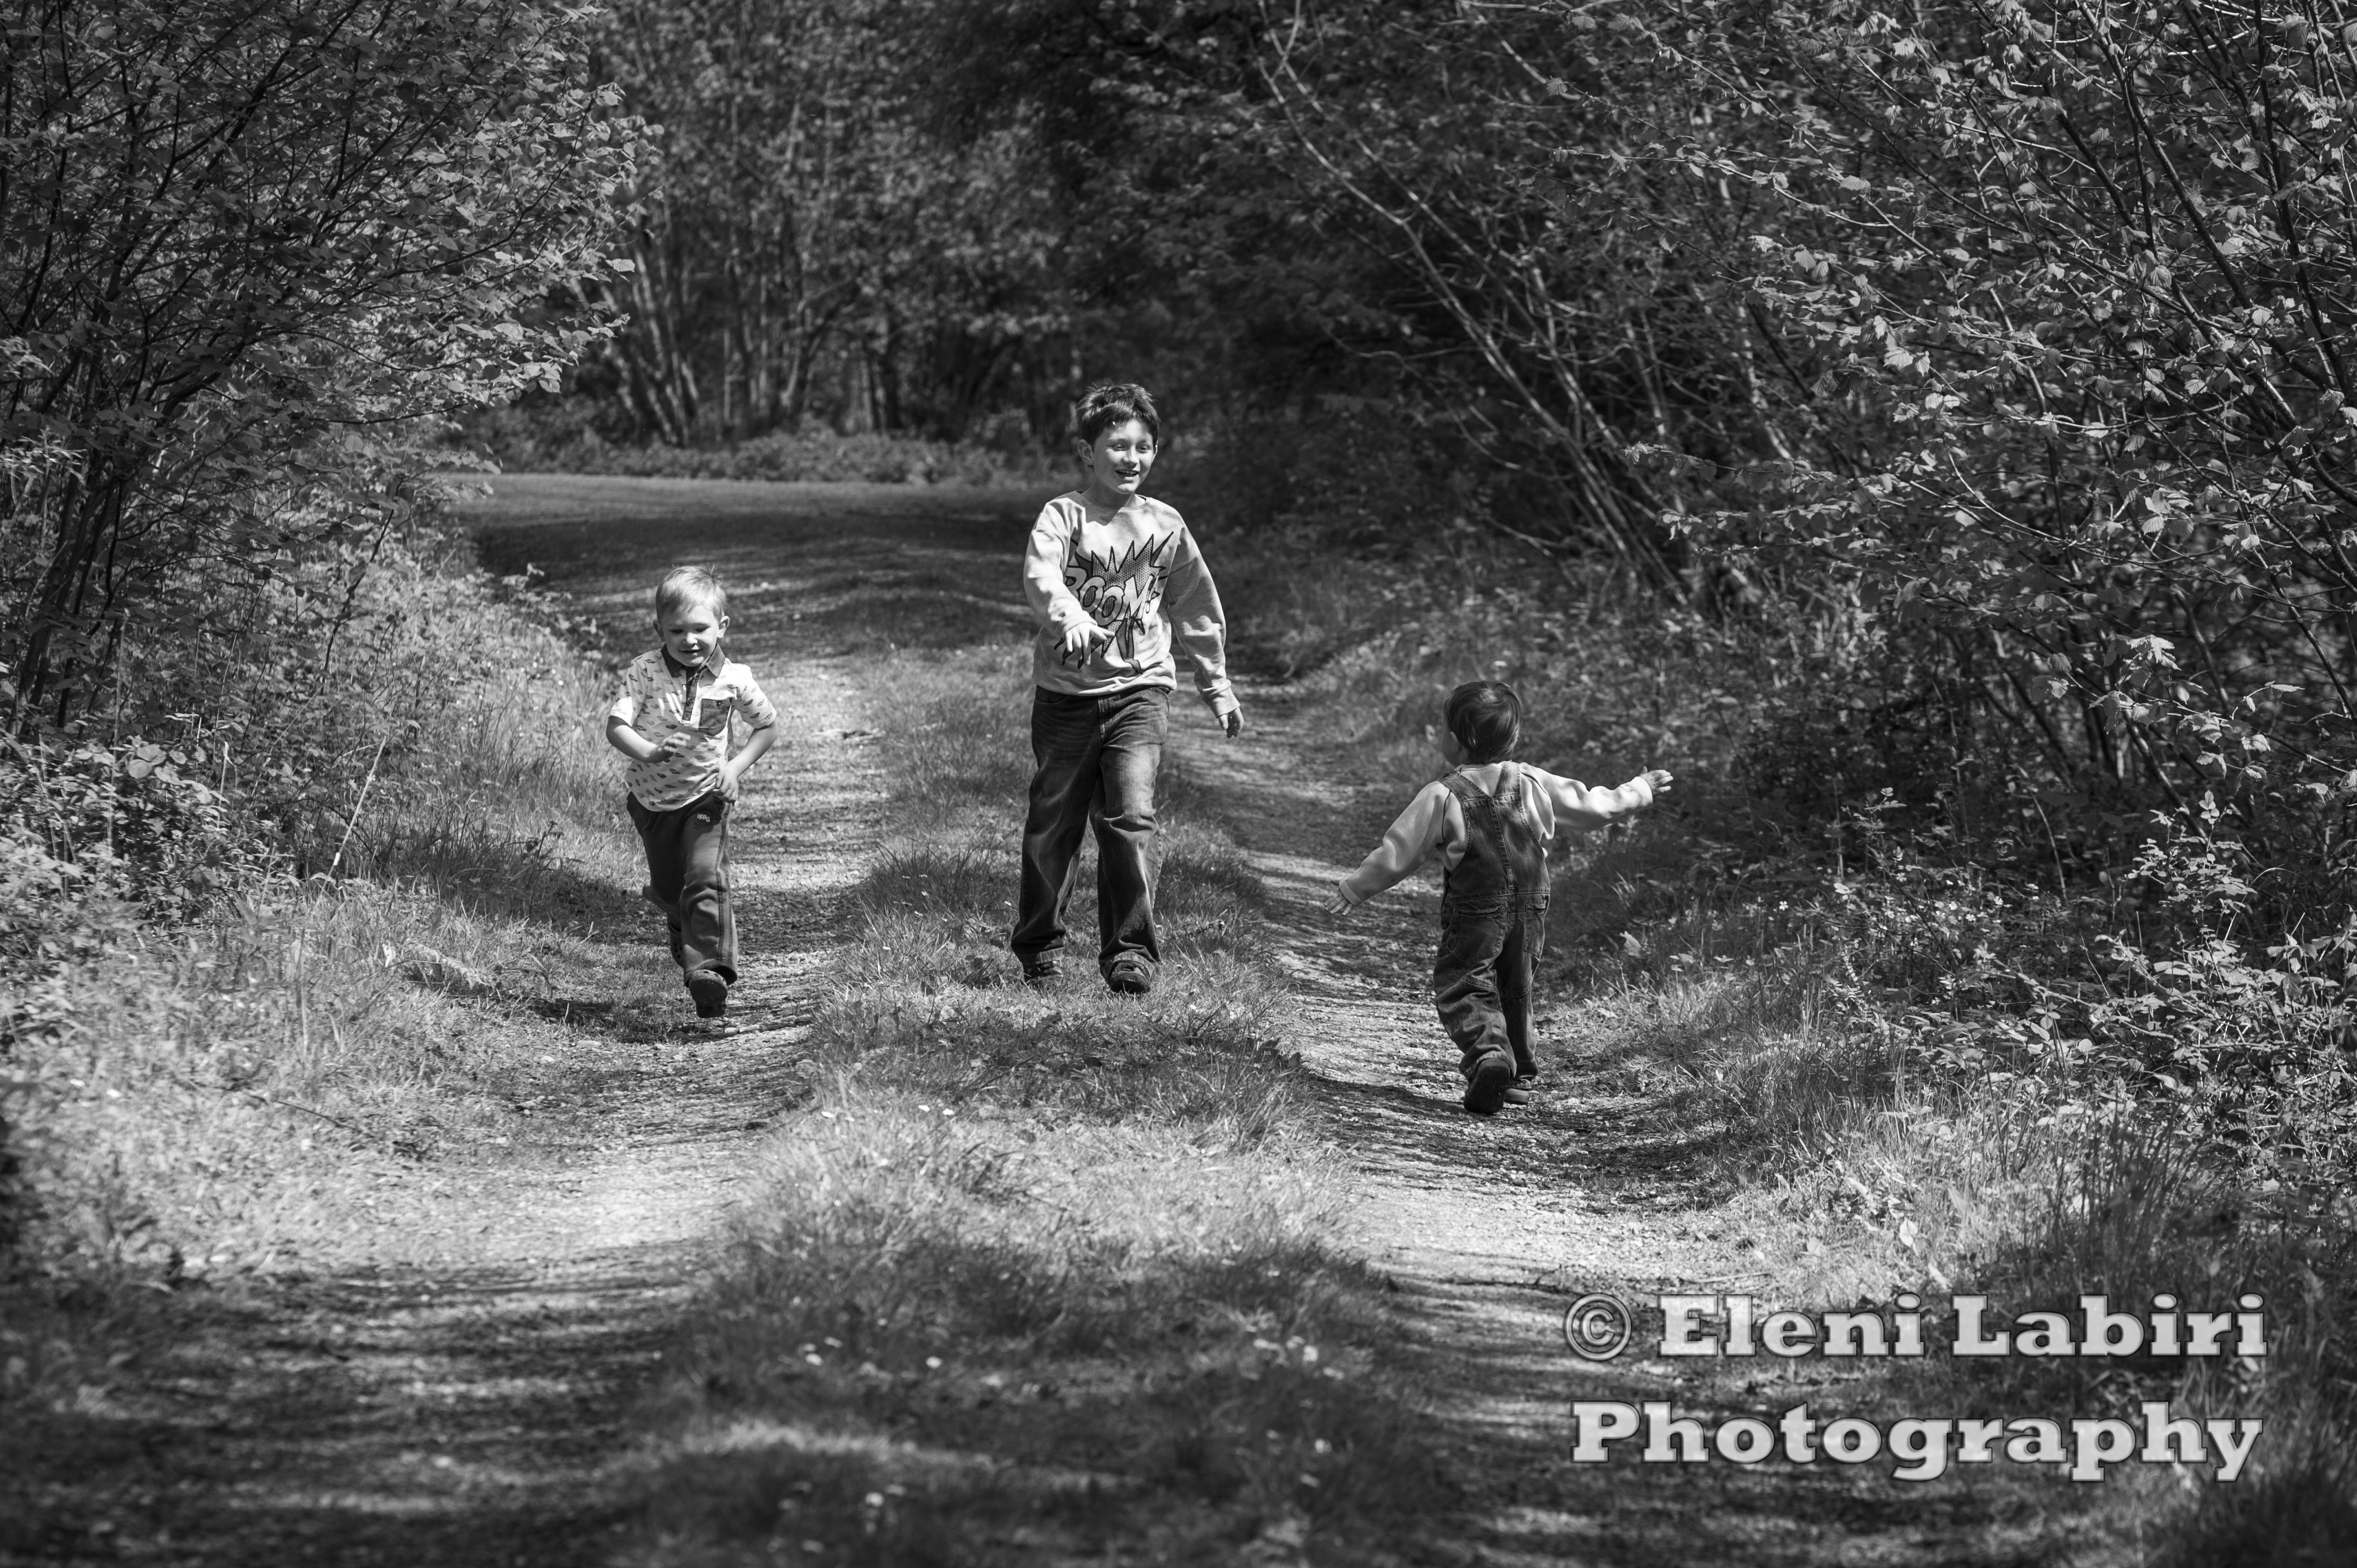 Forest1 copy posted in family fun monochrome outdoors photography tagged art black and white